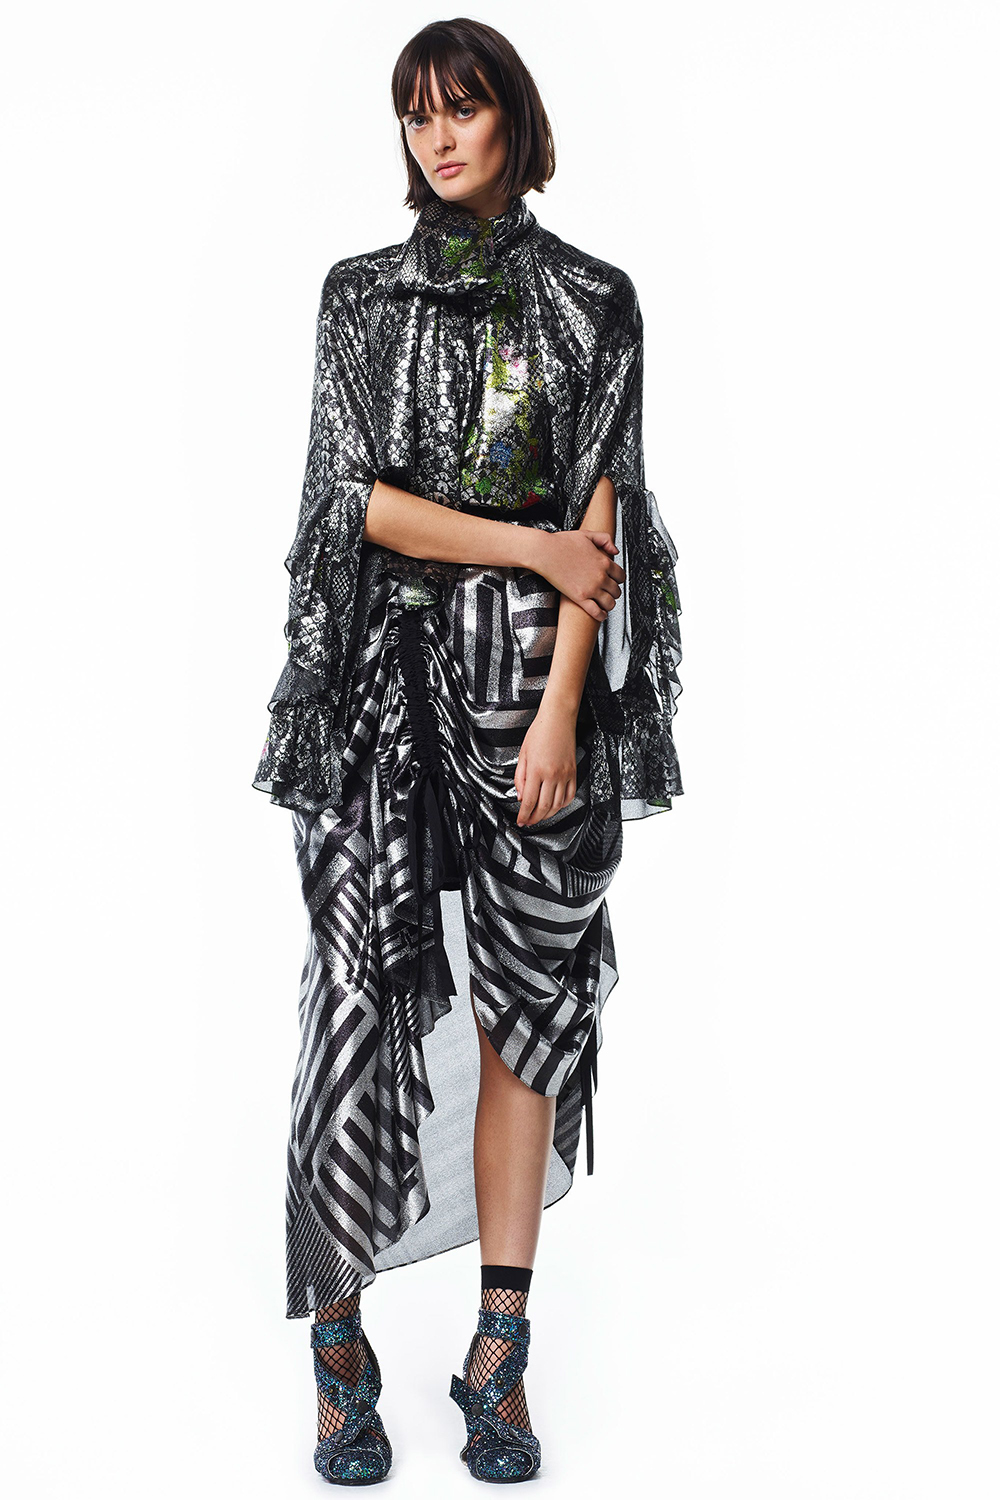 Preen by Thornton Bregazzi Resort 2017 On Bessd (1)